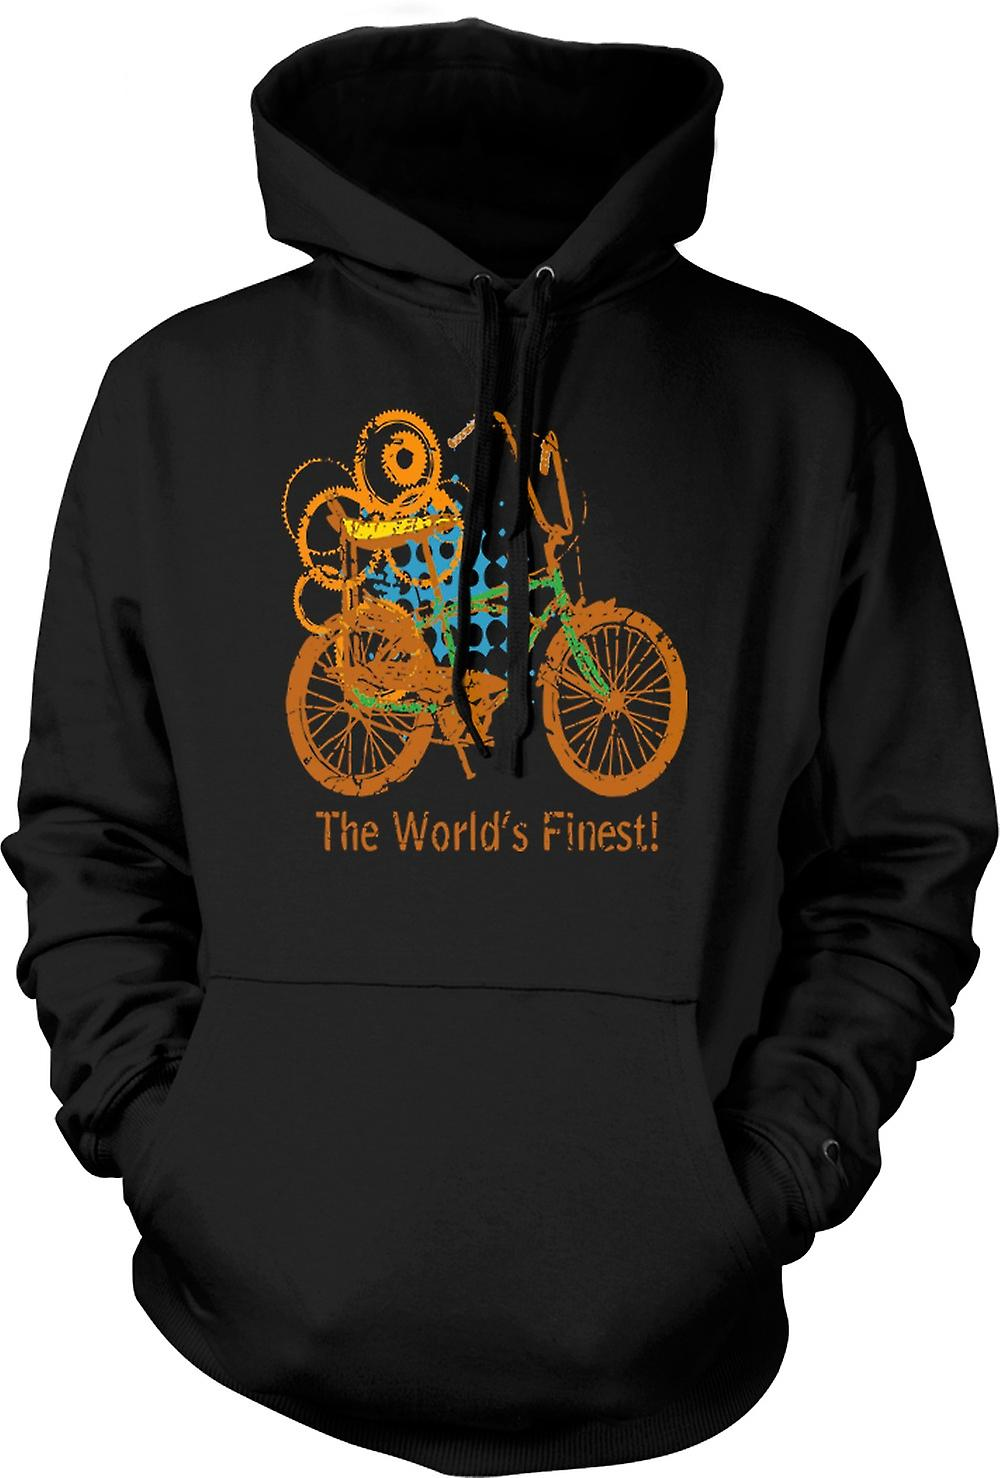 Kids Hoodie - Chopper Bike - World's Finest - Funny Graphic Design